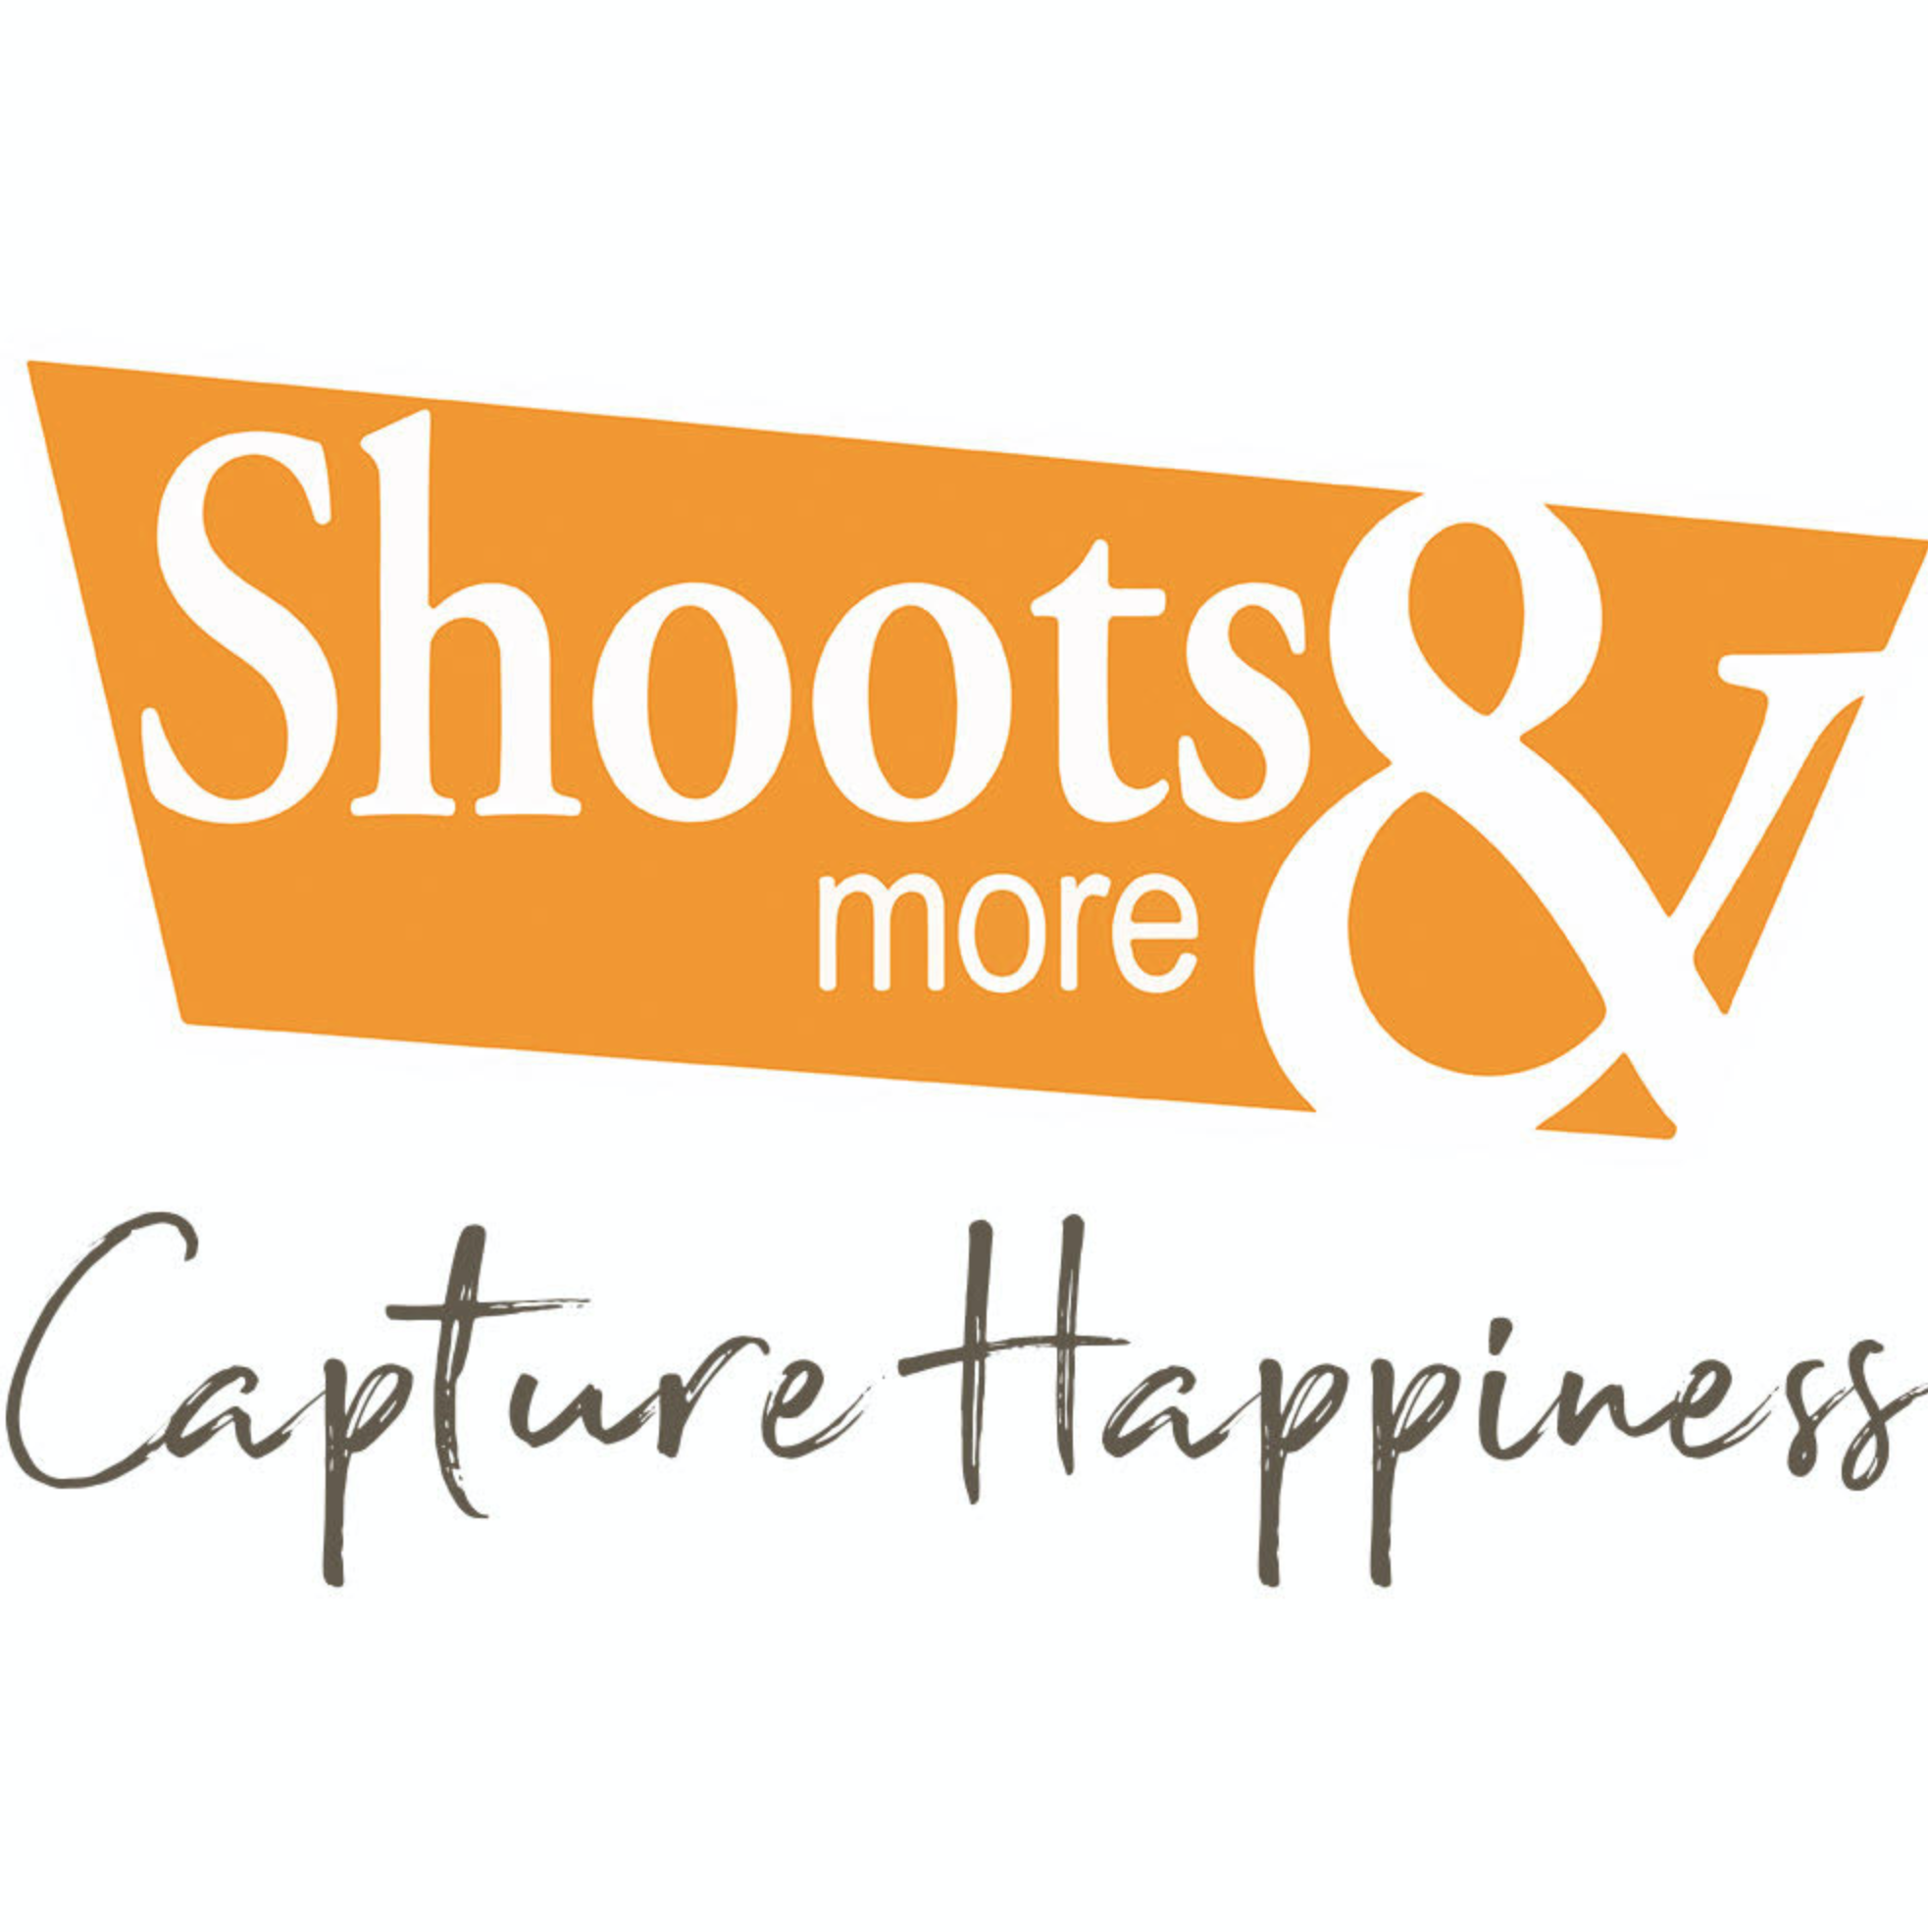 Shoots and More Haarlem